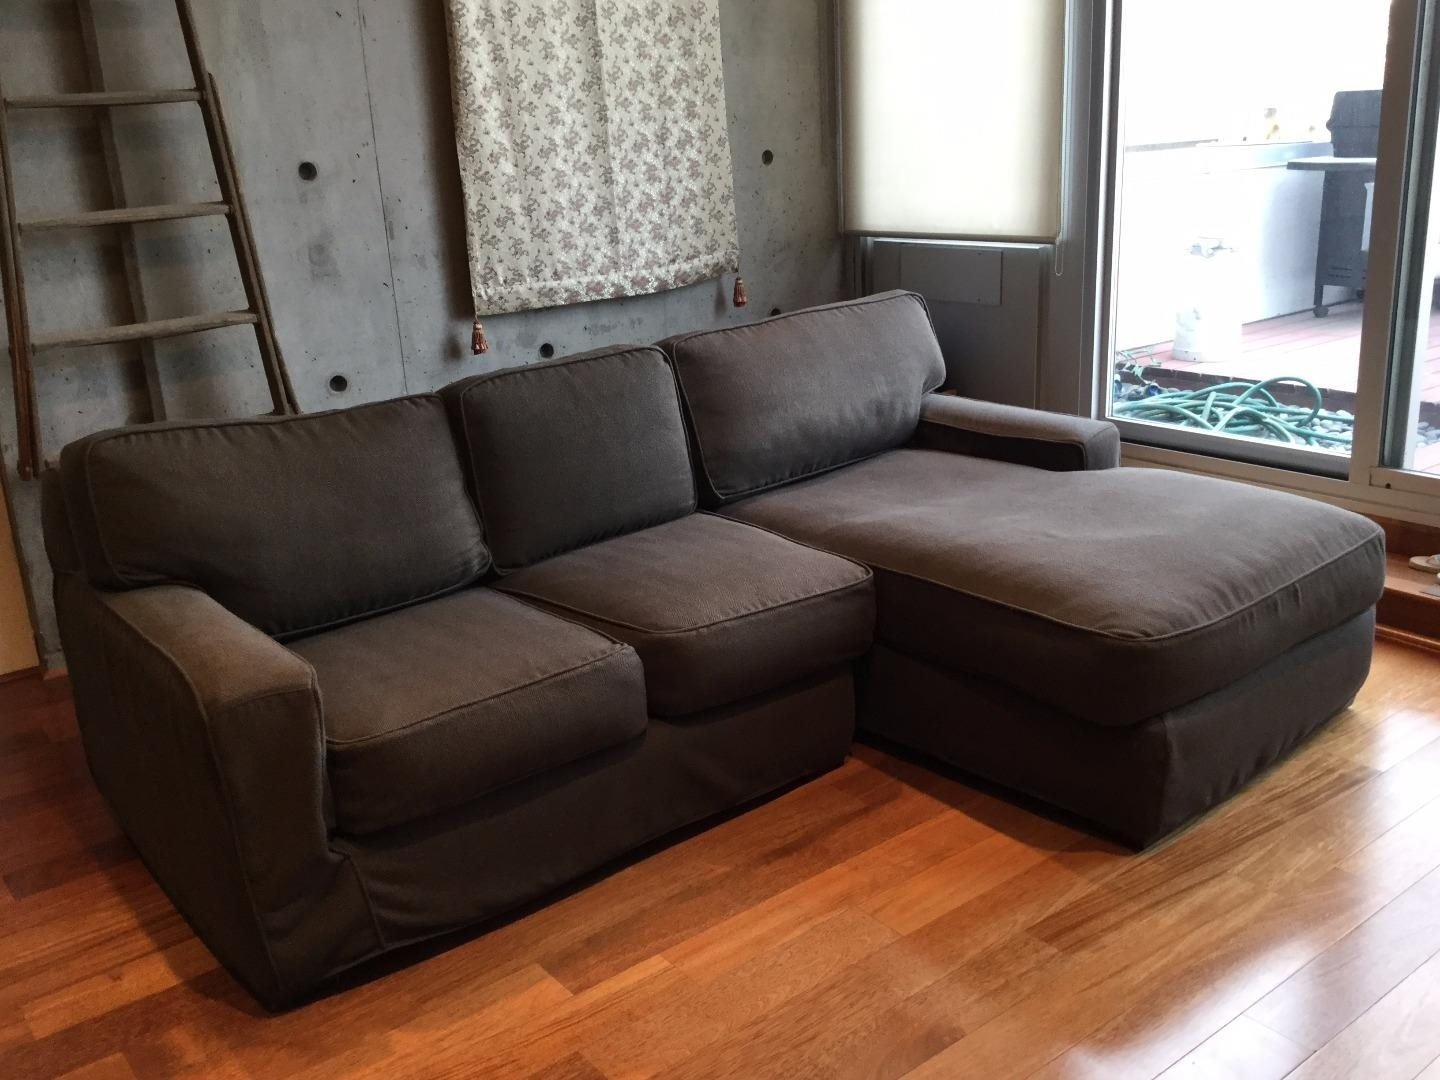 Quatrine Upholstered Sectional Sofa: For Sale In San Francisco, Ca Pertaining To Quatrine Sectional Sofas (View 10 of 10)